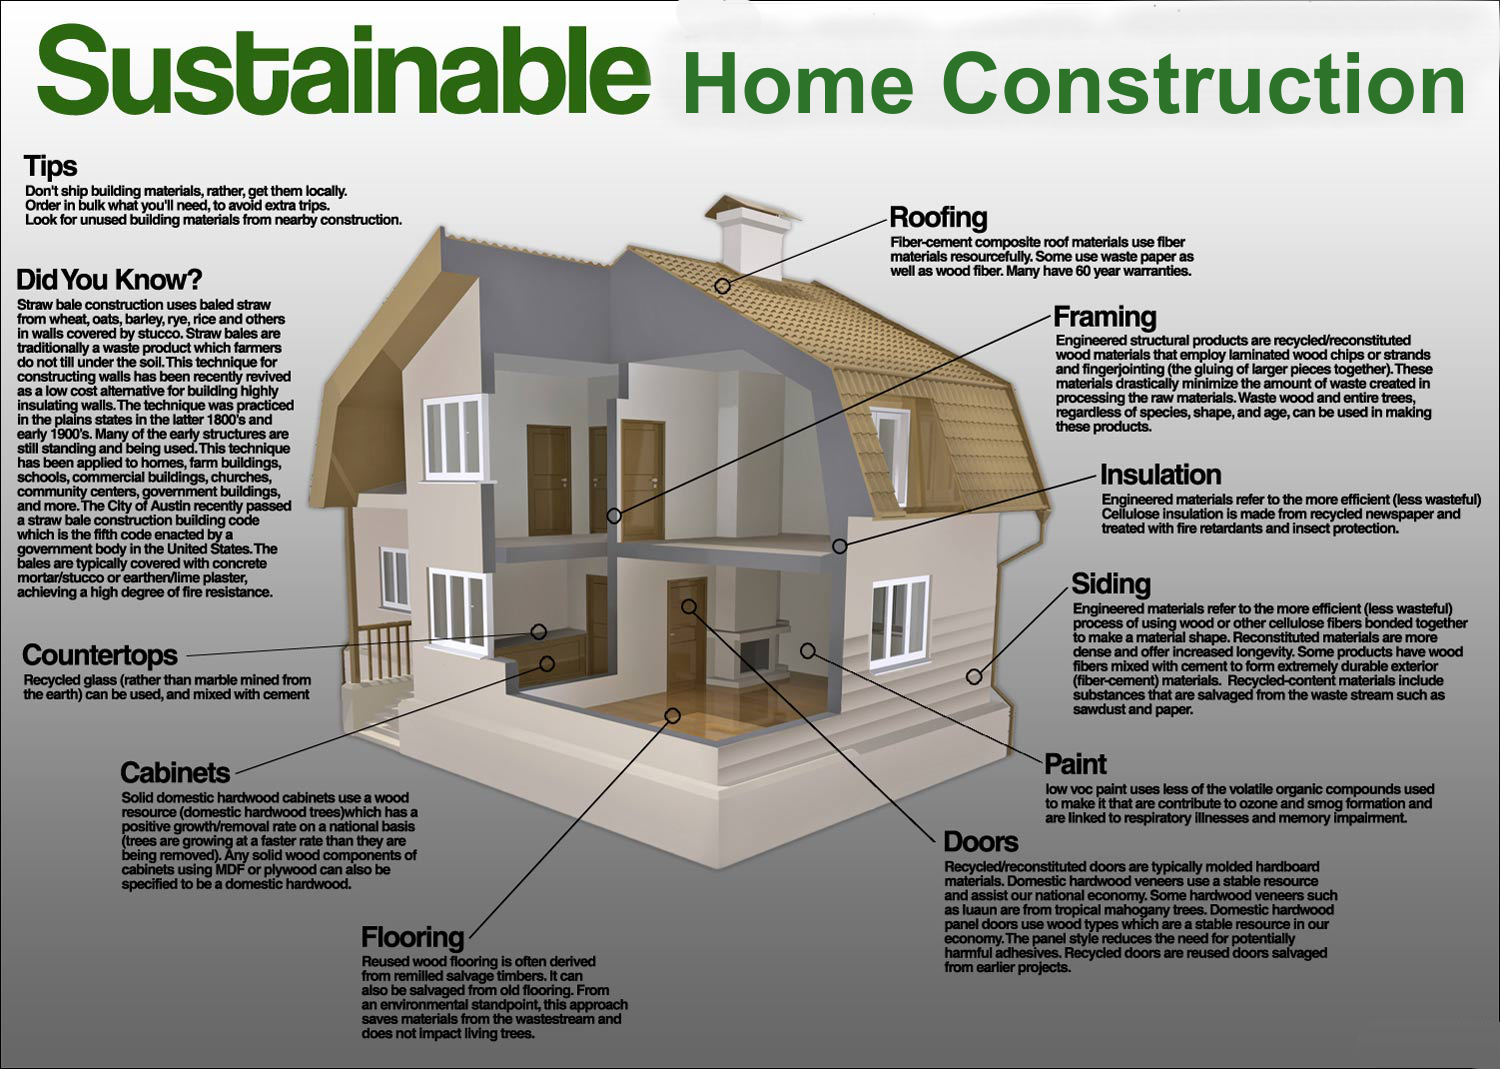 How to design and build your own eco home homemade ftempo for Design and build your own home